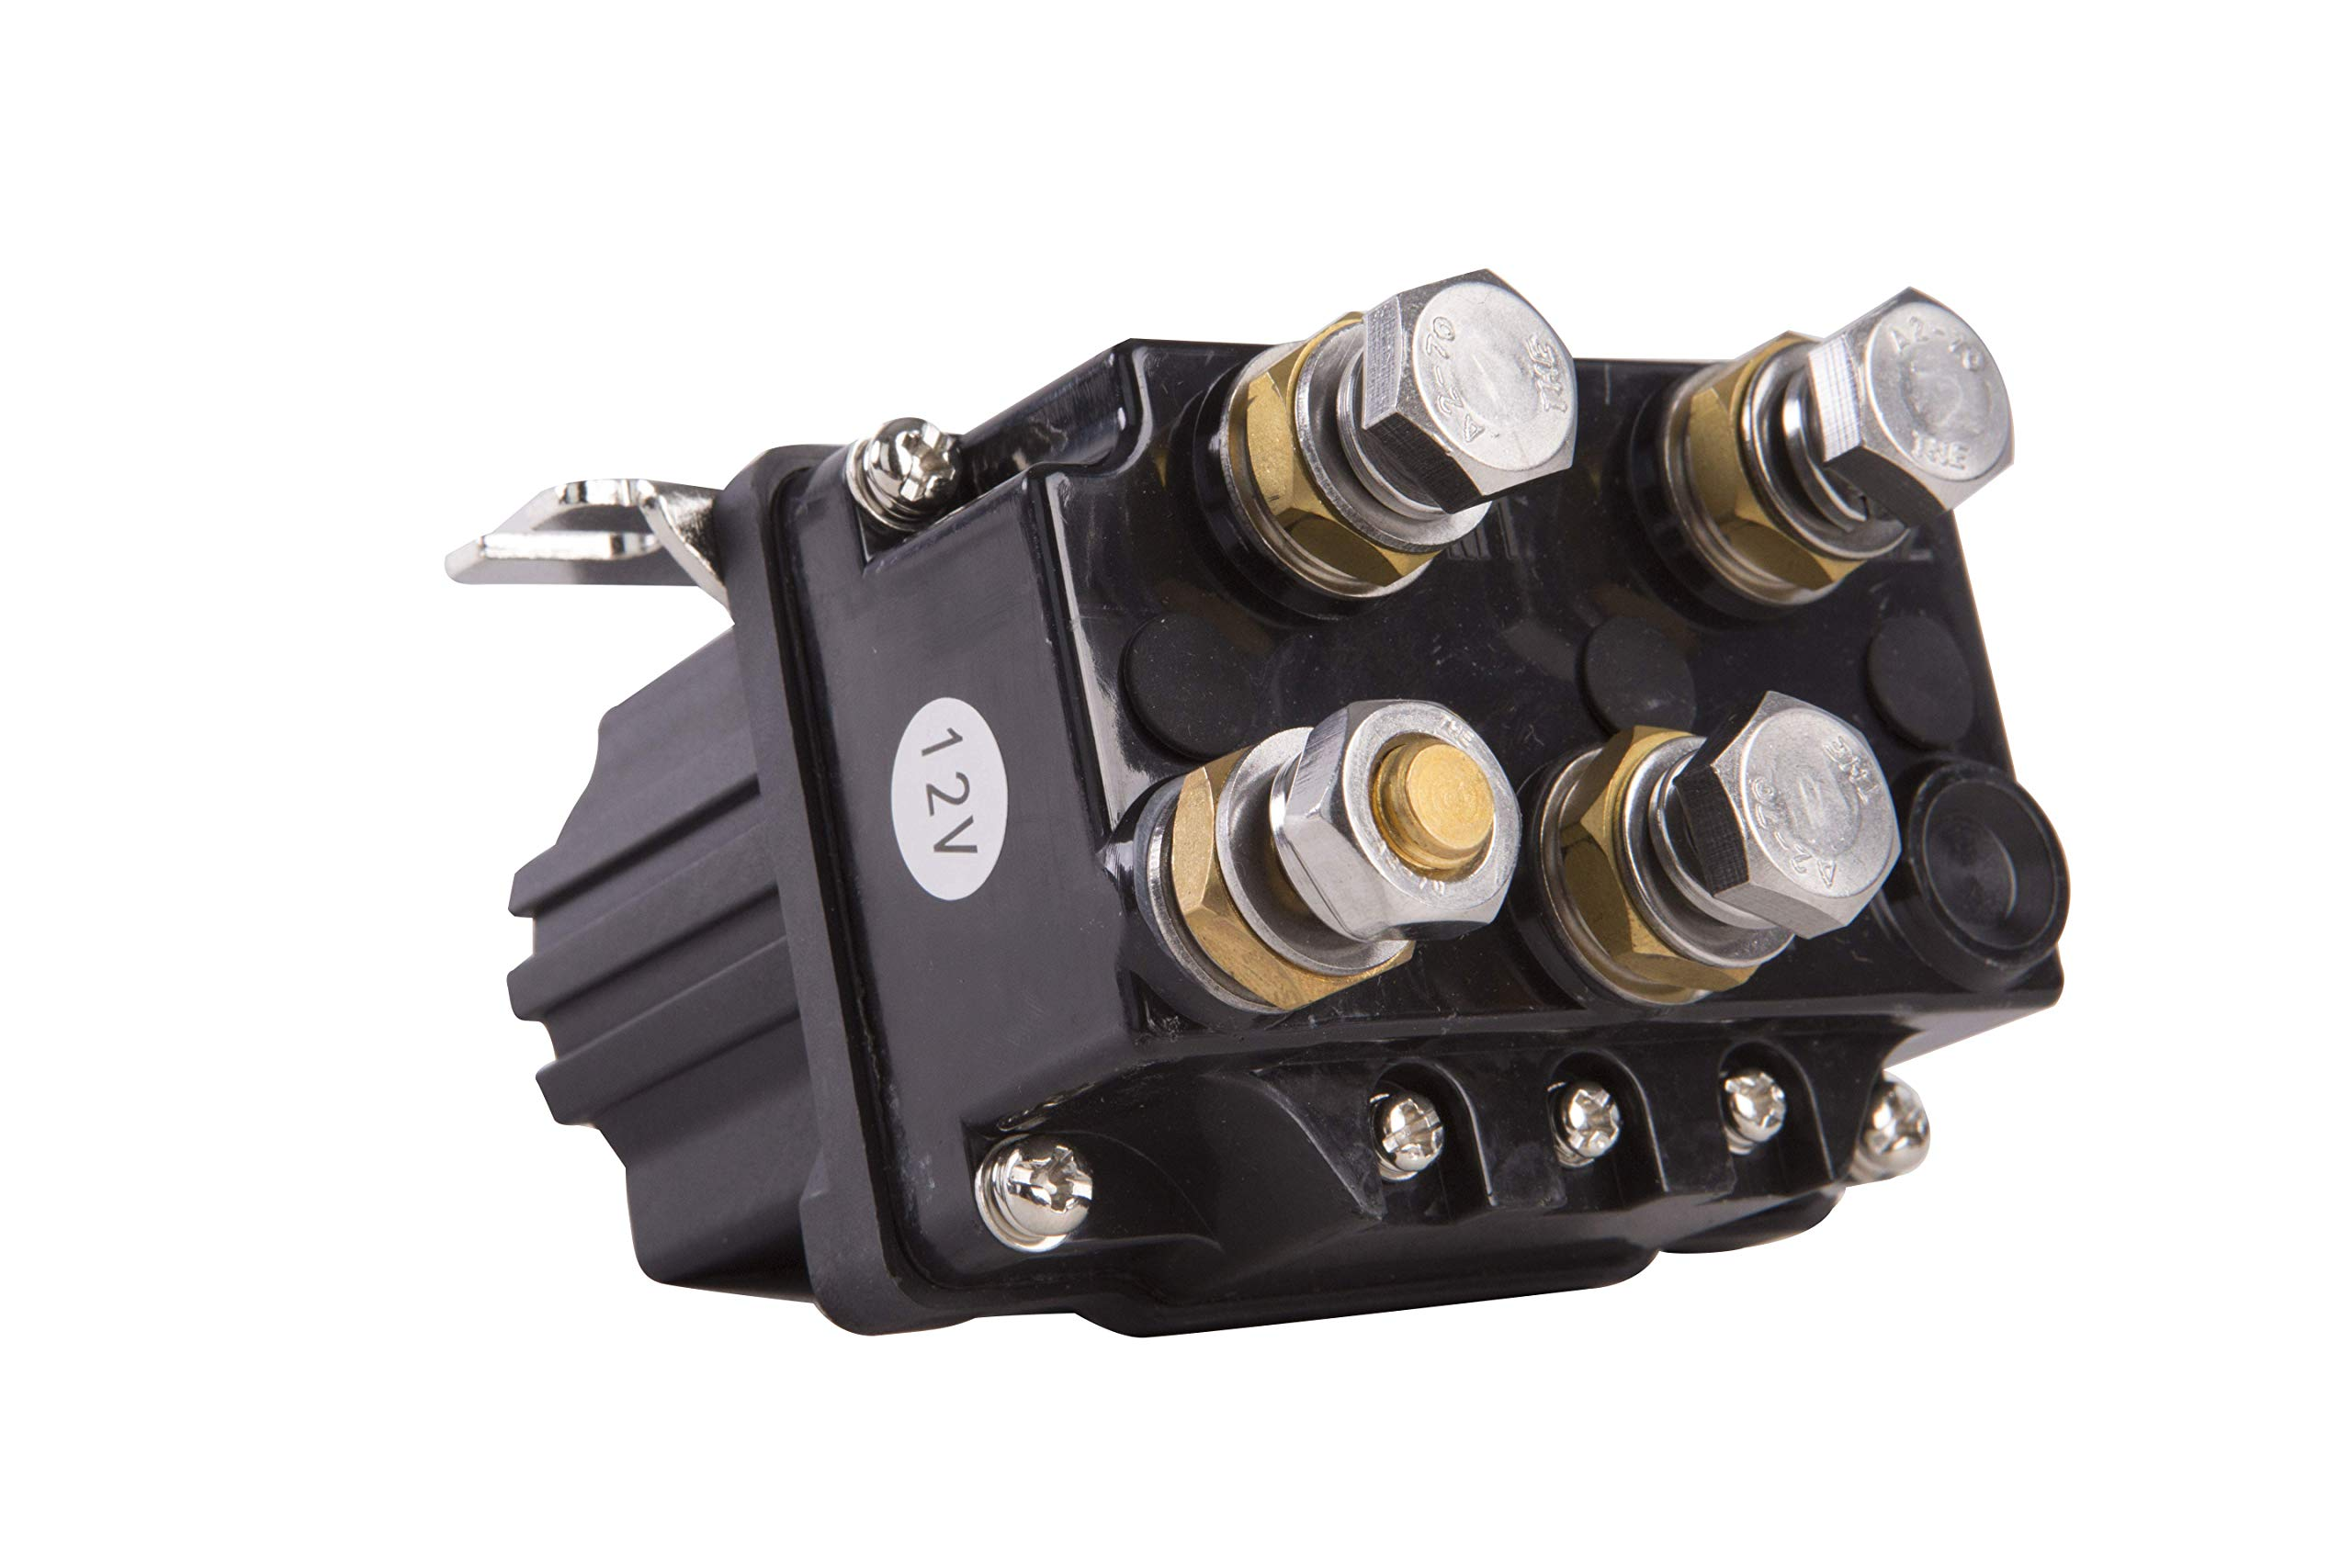 OFFROAD BOAR New 12V 500A Winch Solenoid Contactor Replacement by OFFROAD BOAR